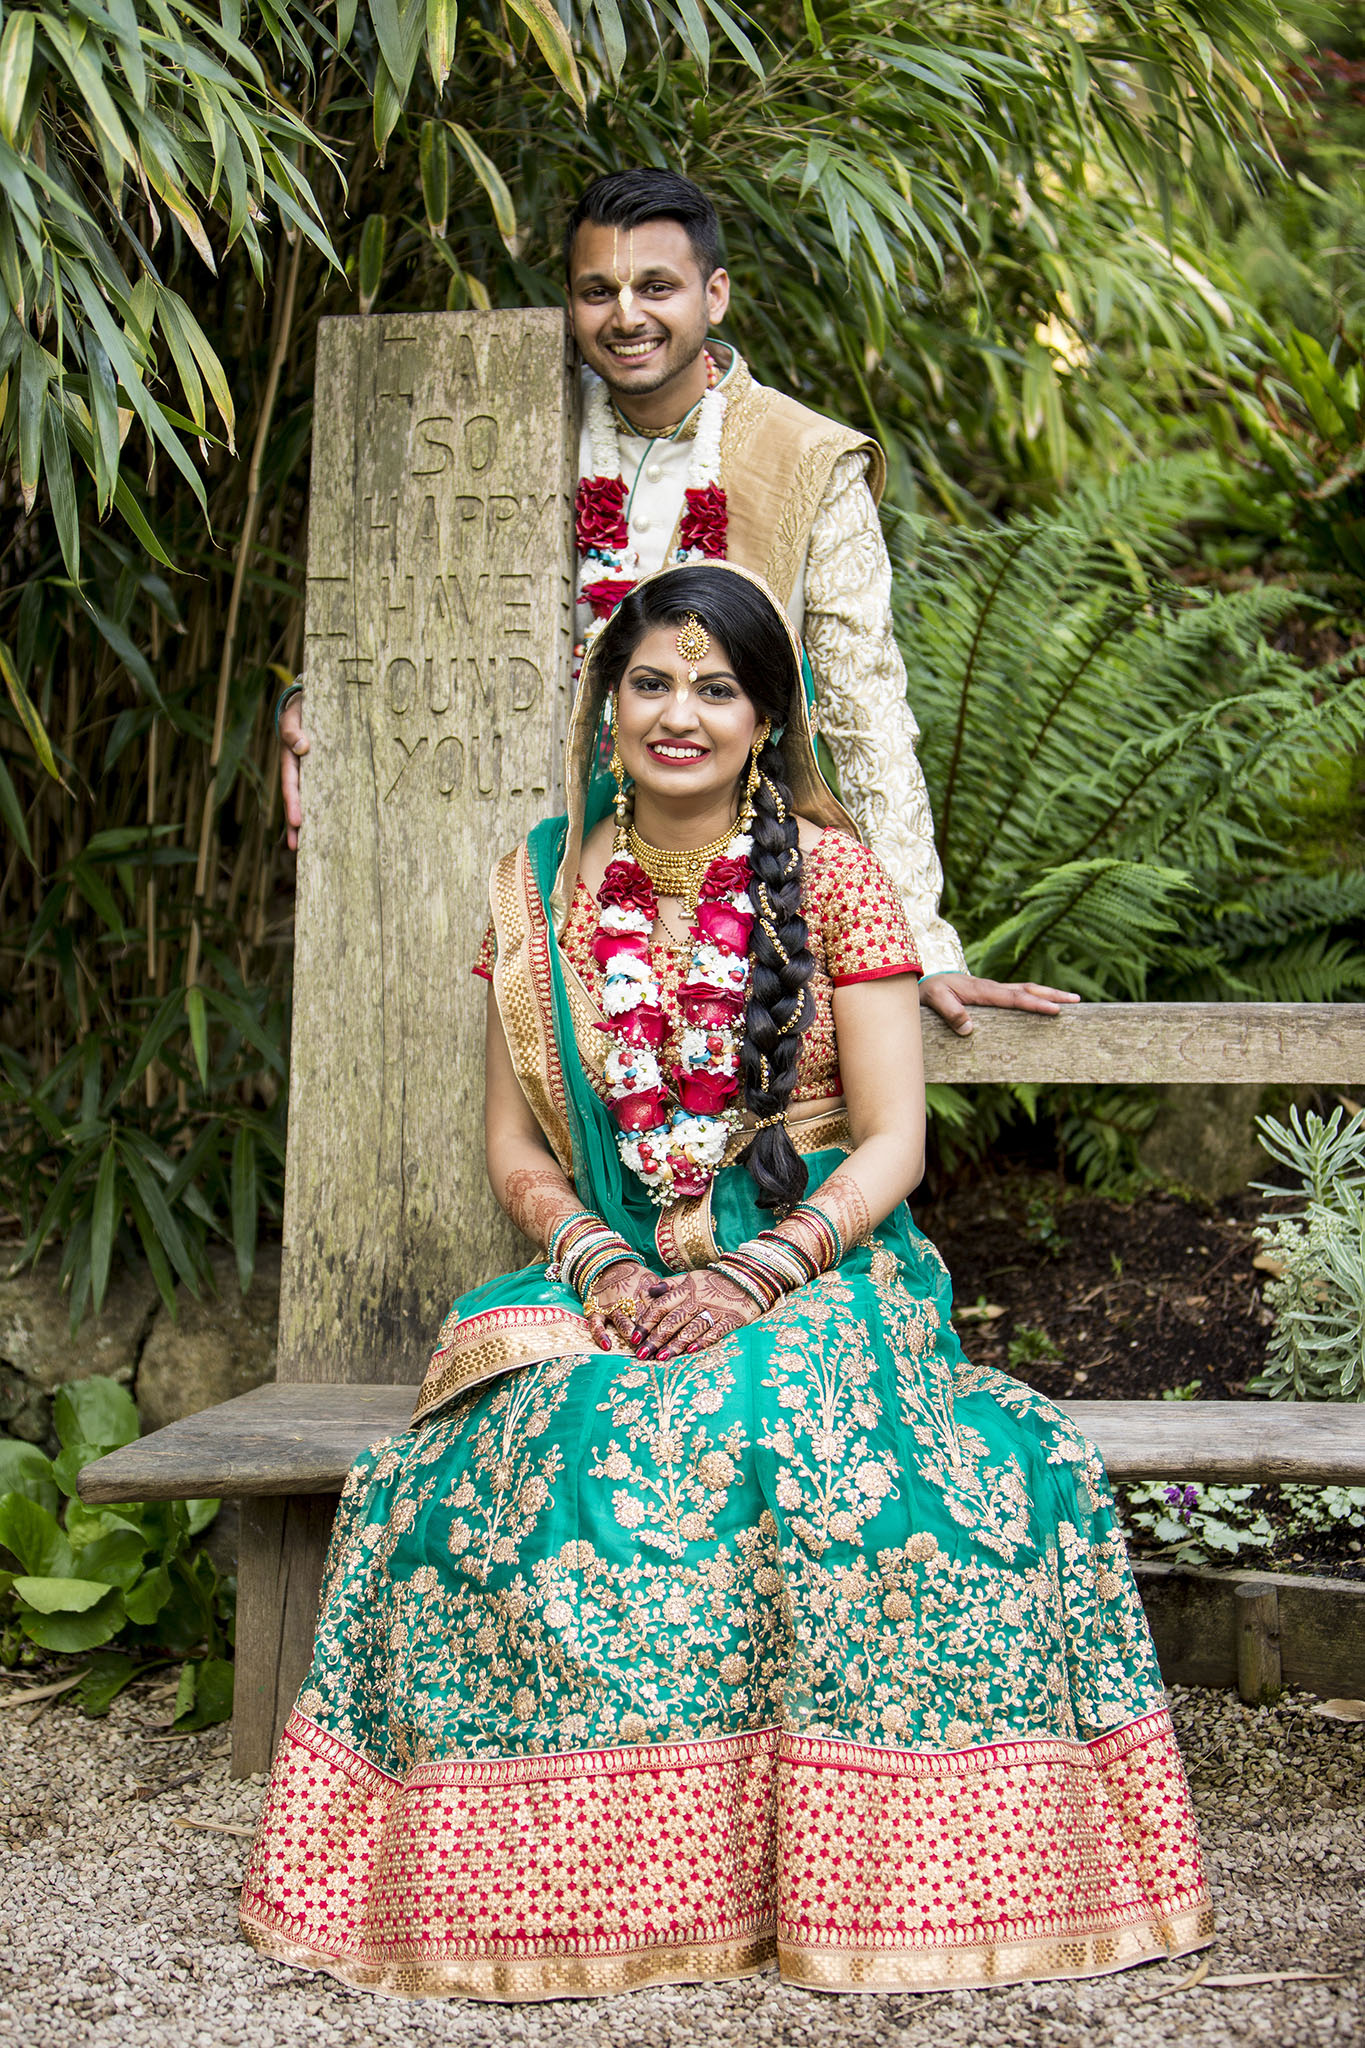 elizabethgphotography_kingslangley_hertfordshire_fineart_indian_wedding_photography_jigna_bhuja_bhaktivedanta_manor_watford_08.jpg